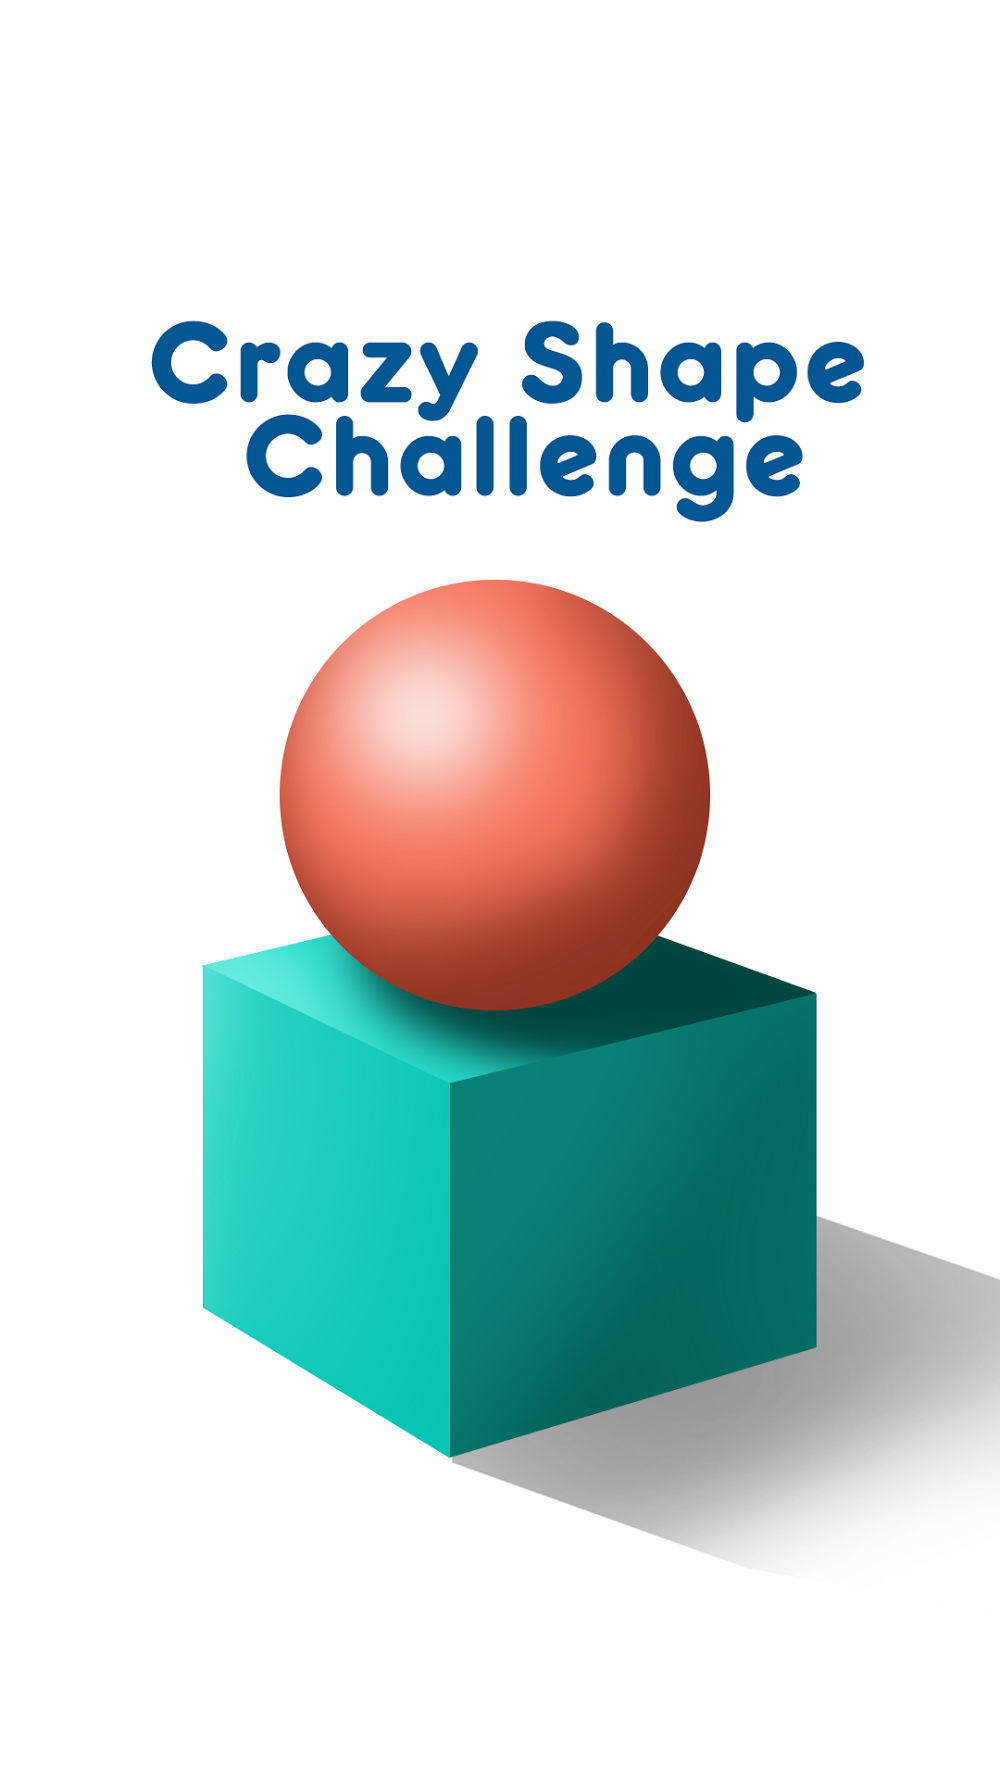 Crazy Shape Challenge is an insanely addictive casual game